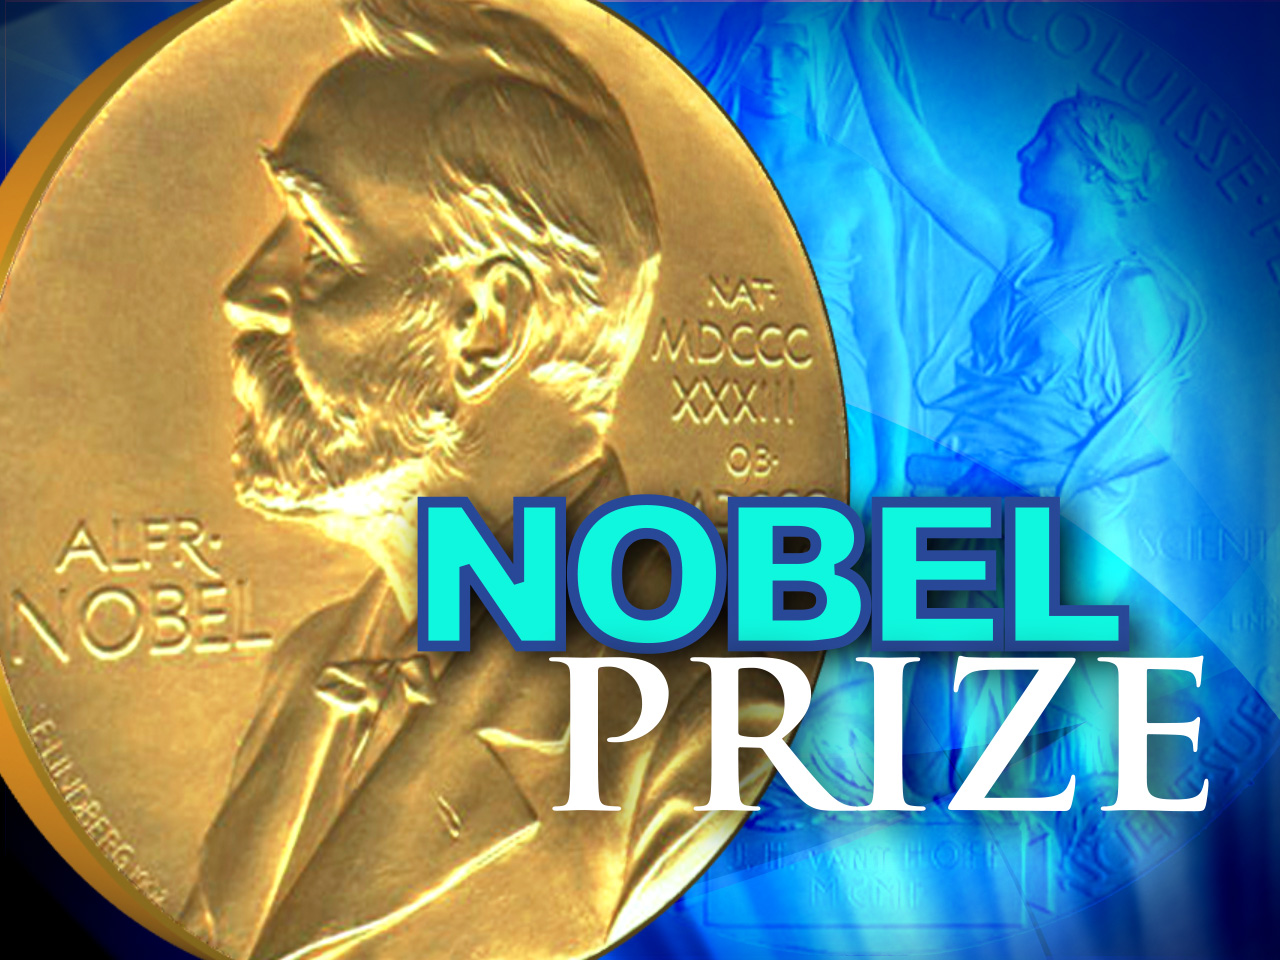 The Norwegian Nobel Committee has decided to award the  Nobel Peace Prize for 2017  to the  International Campaign to Abolish Nuclear Weapons (ICAN) . The organization is receiving the award for its work to draw attention to the catastrophic humanitarian consequences of any use of nuclear weapons and for its ground-breaking efforts to achieve a treaty-based prohibition of such weapons